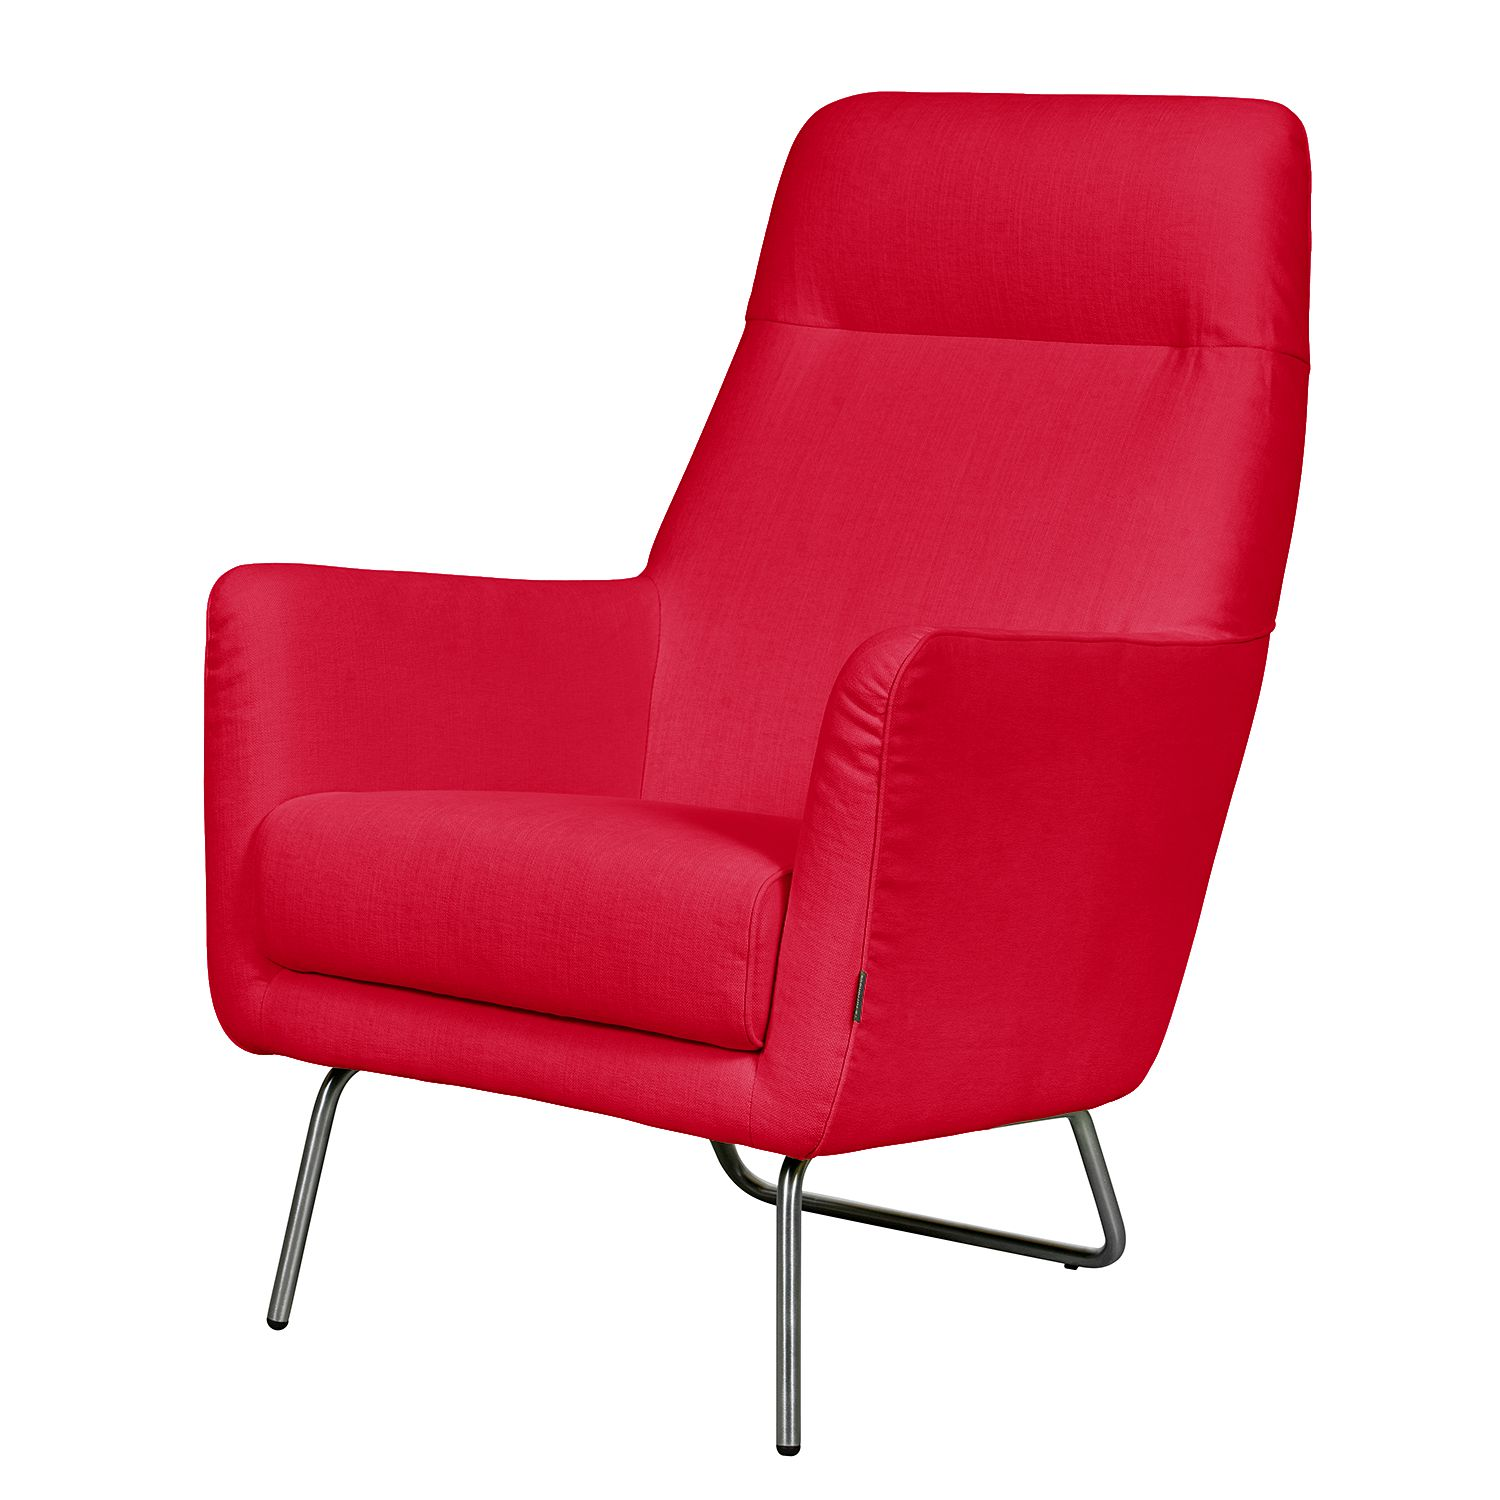 Fauteuil Bebour - Tissu - Rouge, Says Who